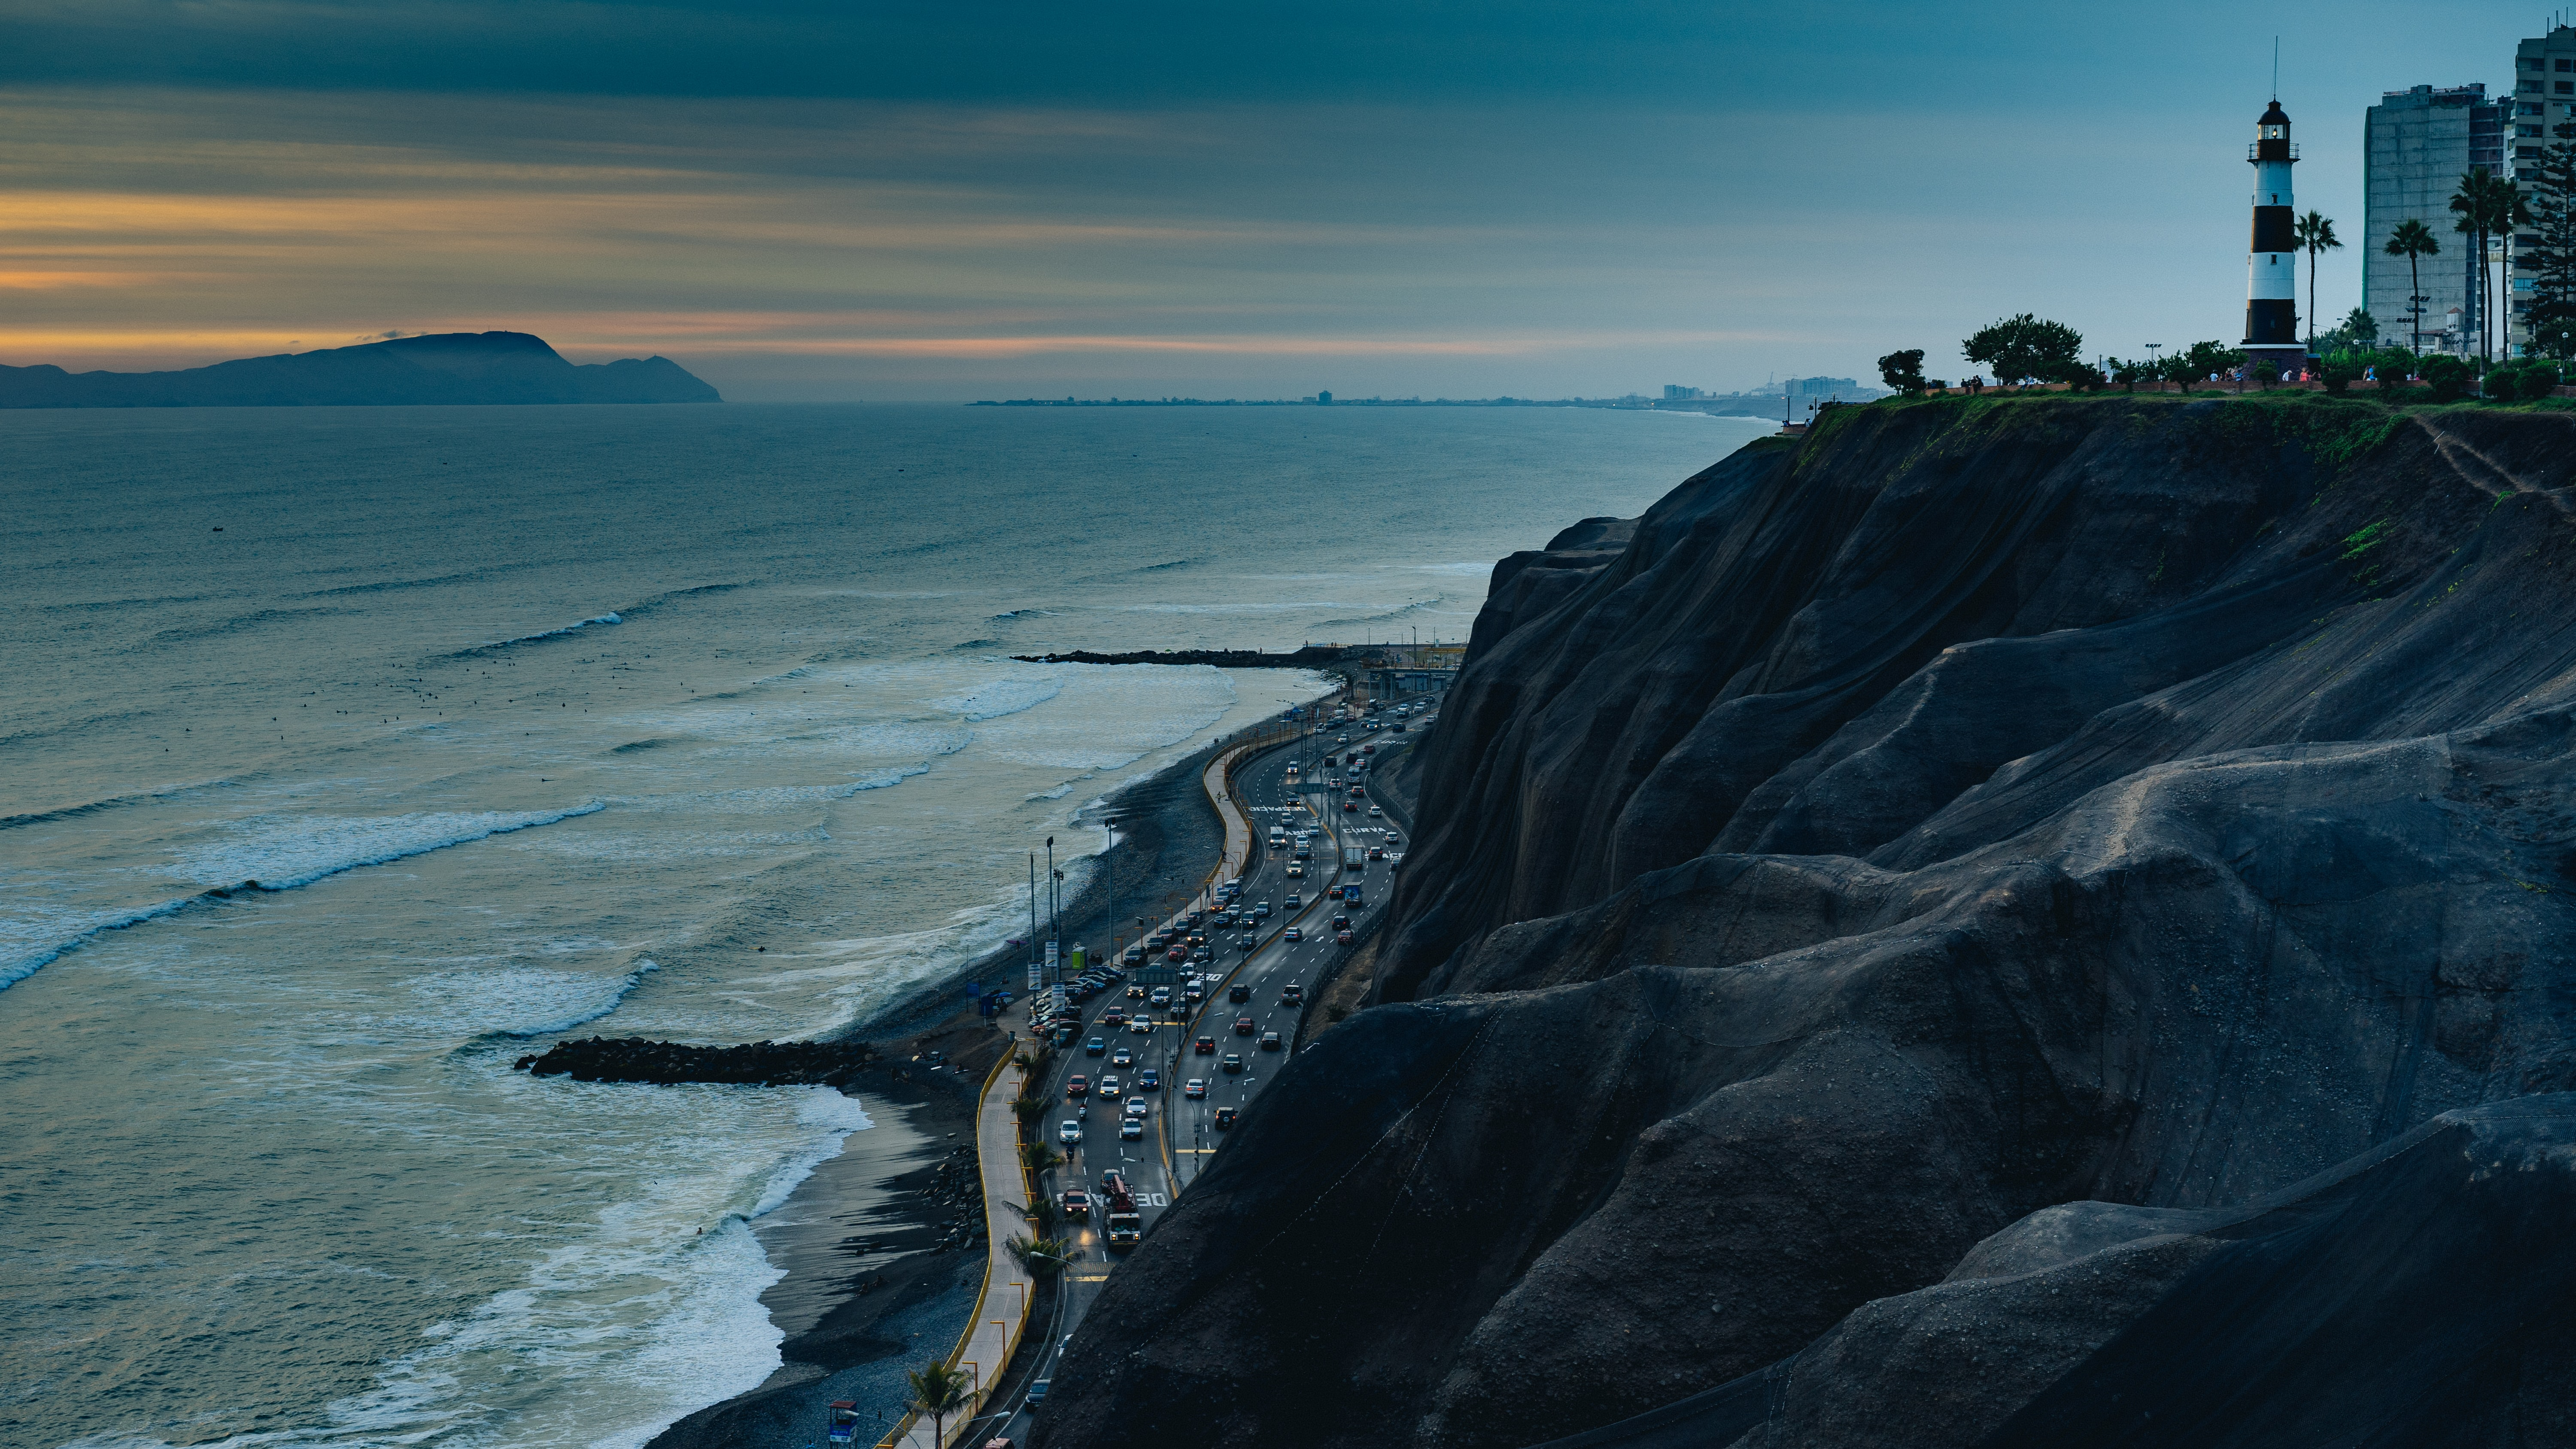 La Marina Lighthouse in Miraflores Peru standing upon a rocky cliff during sunset as waves crash on the shoreline